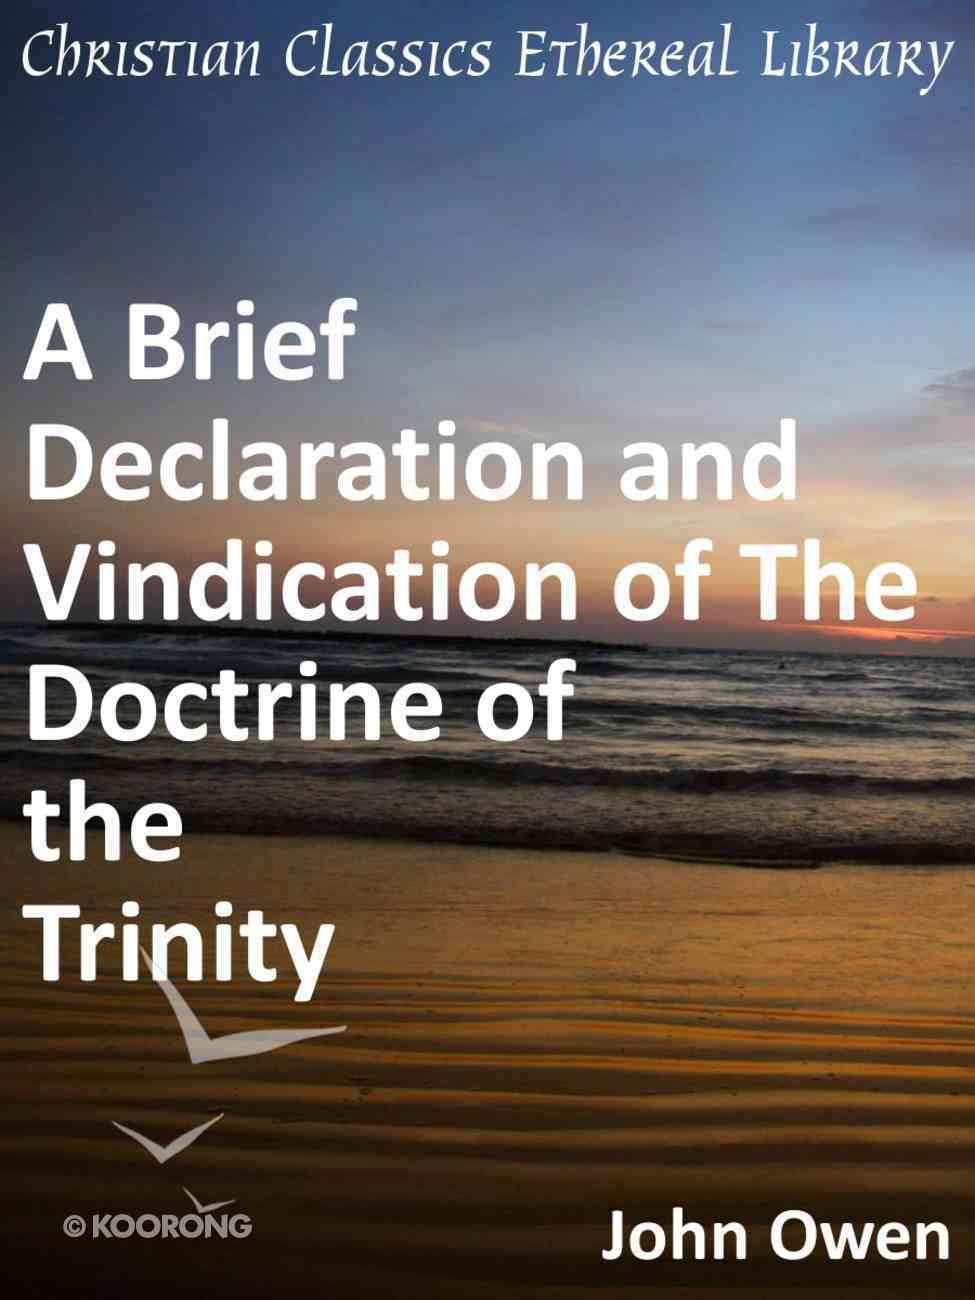 A Brief Declaration and Vindication of the Doctrine of the Trinity eBook